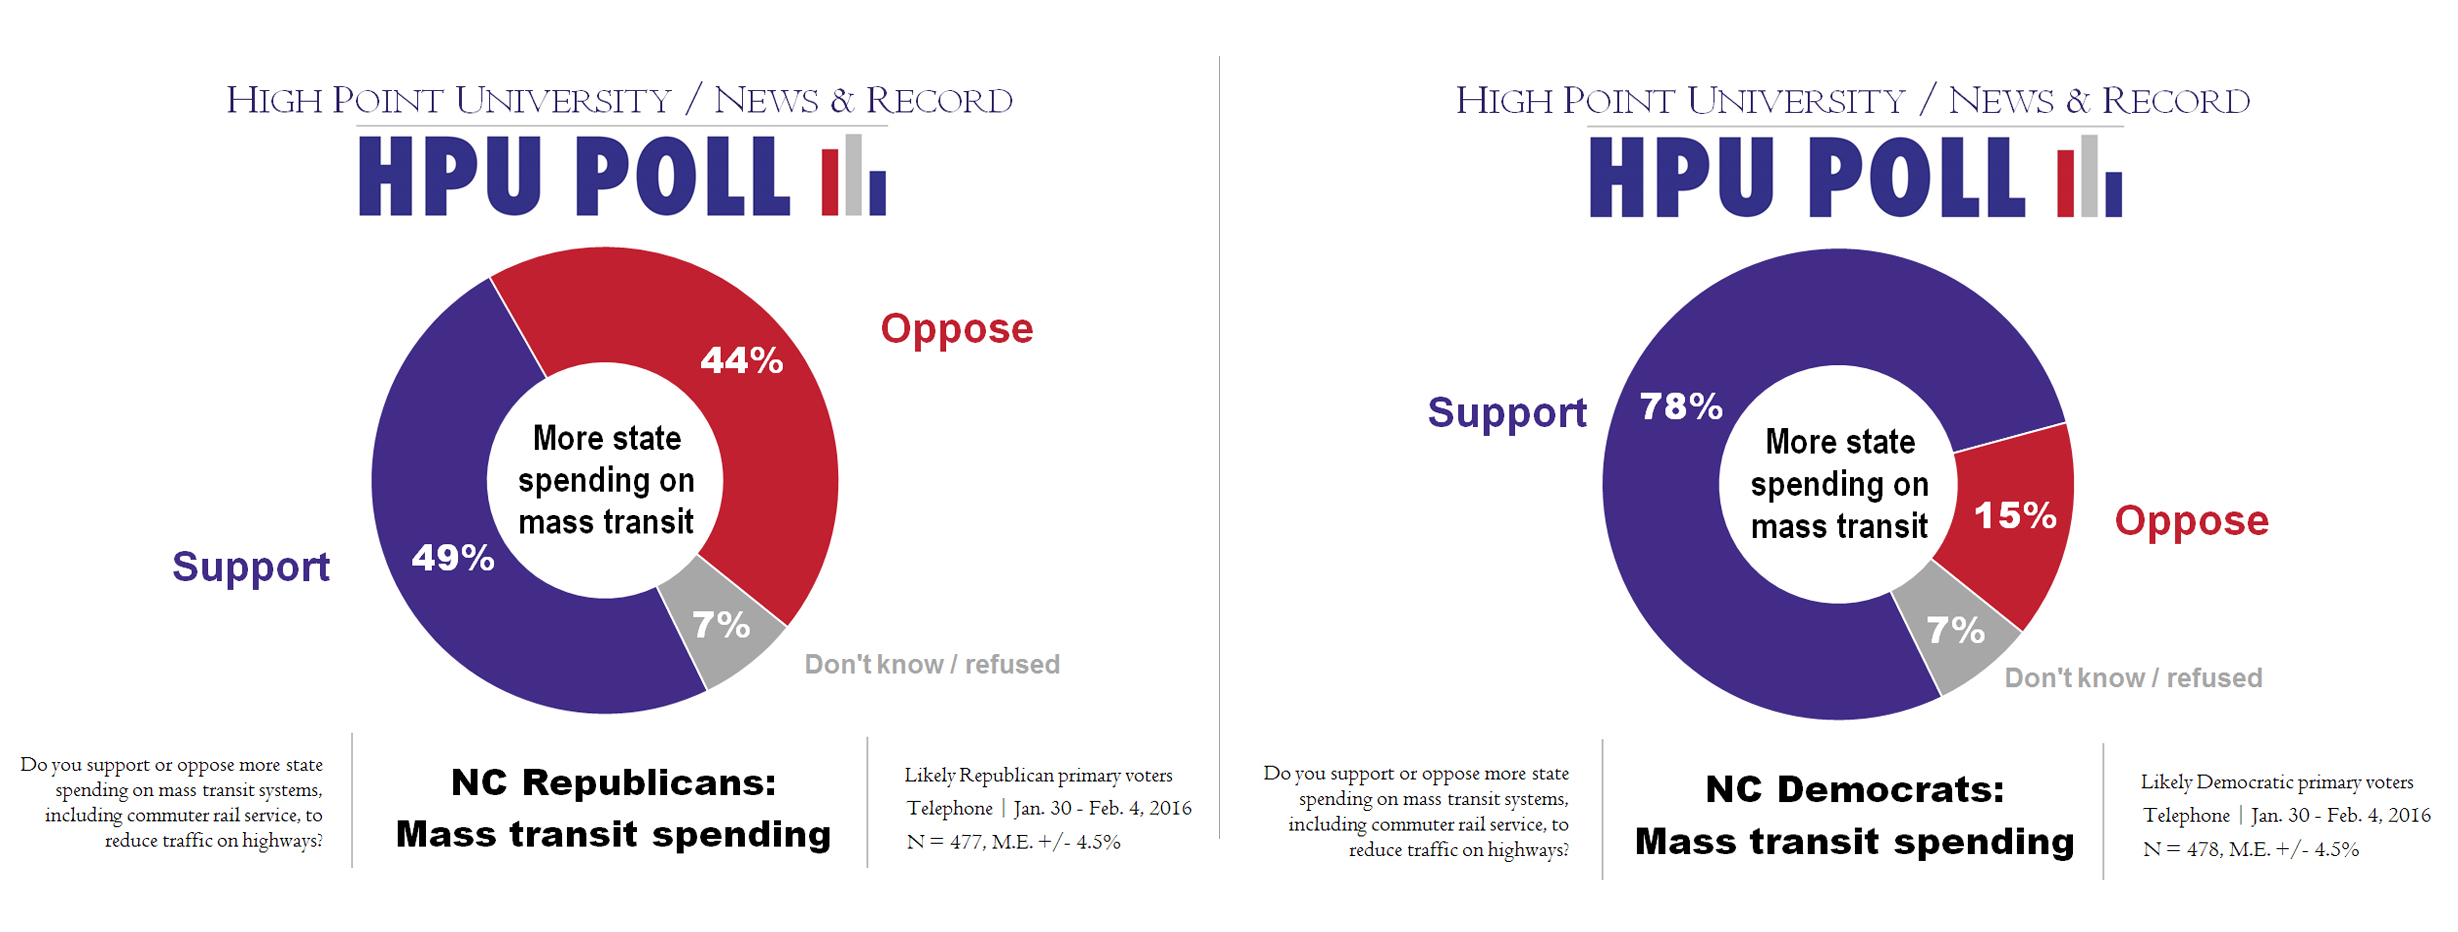 HPU N&R Poll - more spending on mass transit systems - Rep vs Dem